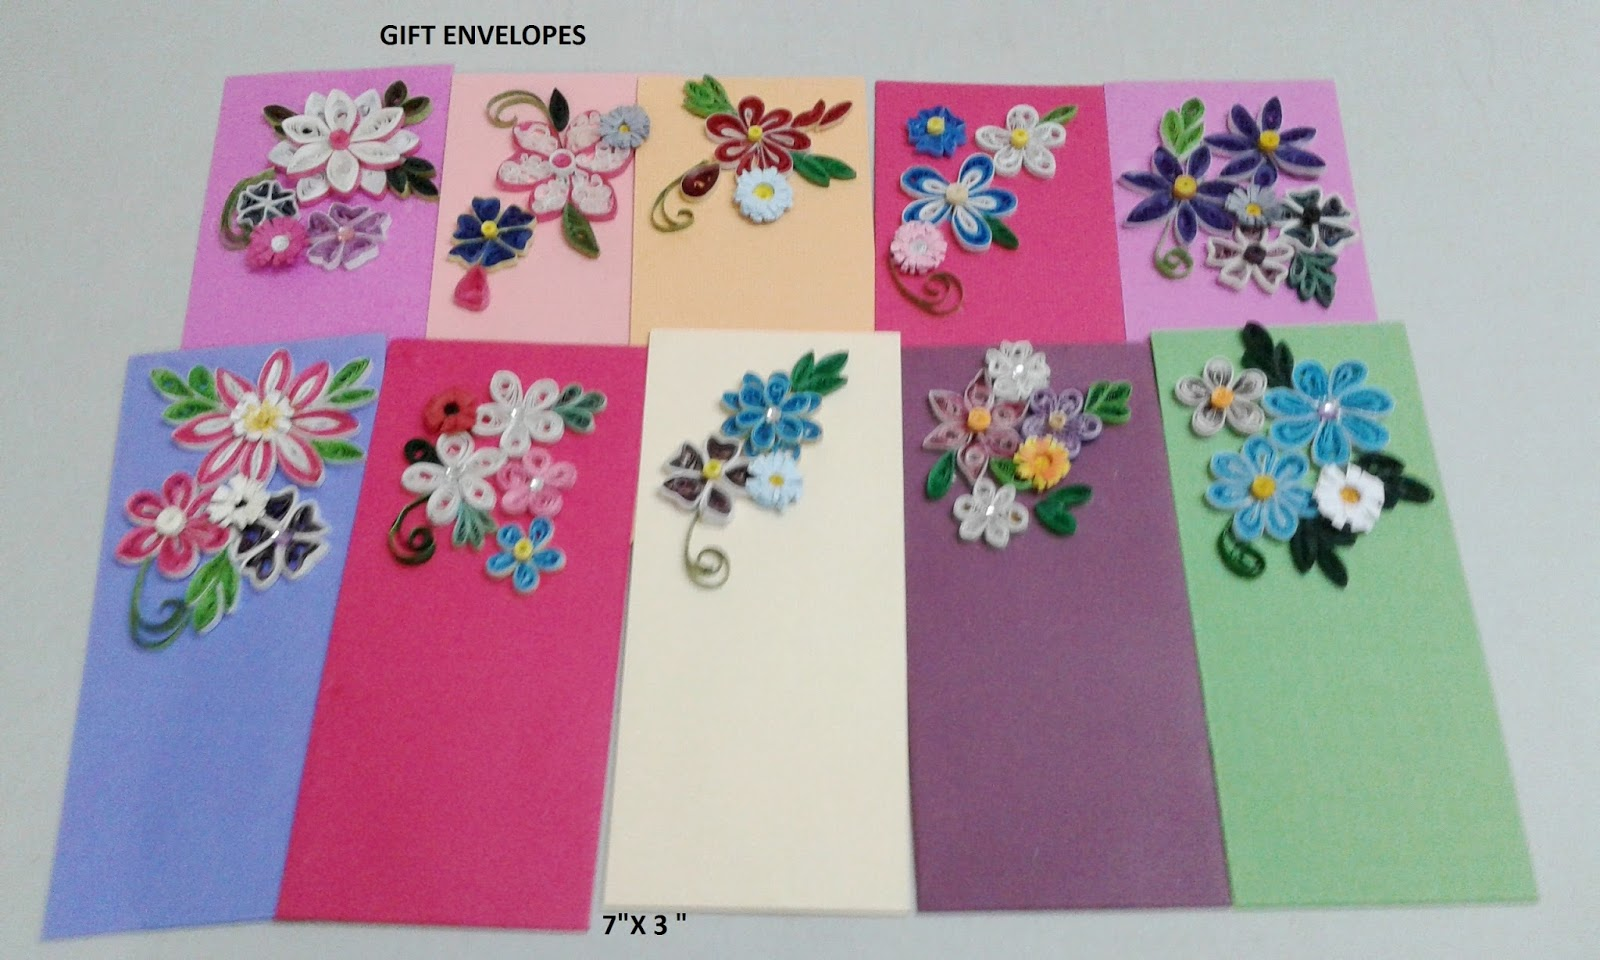 Quillingmagic : Quilled Gift Envelopes for Simple Quilling Designs For Envelopes  156eri